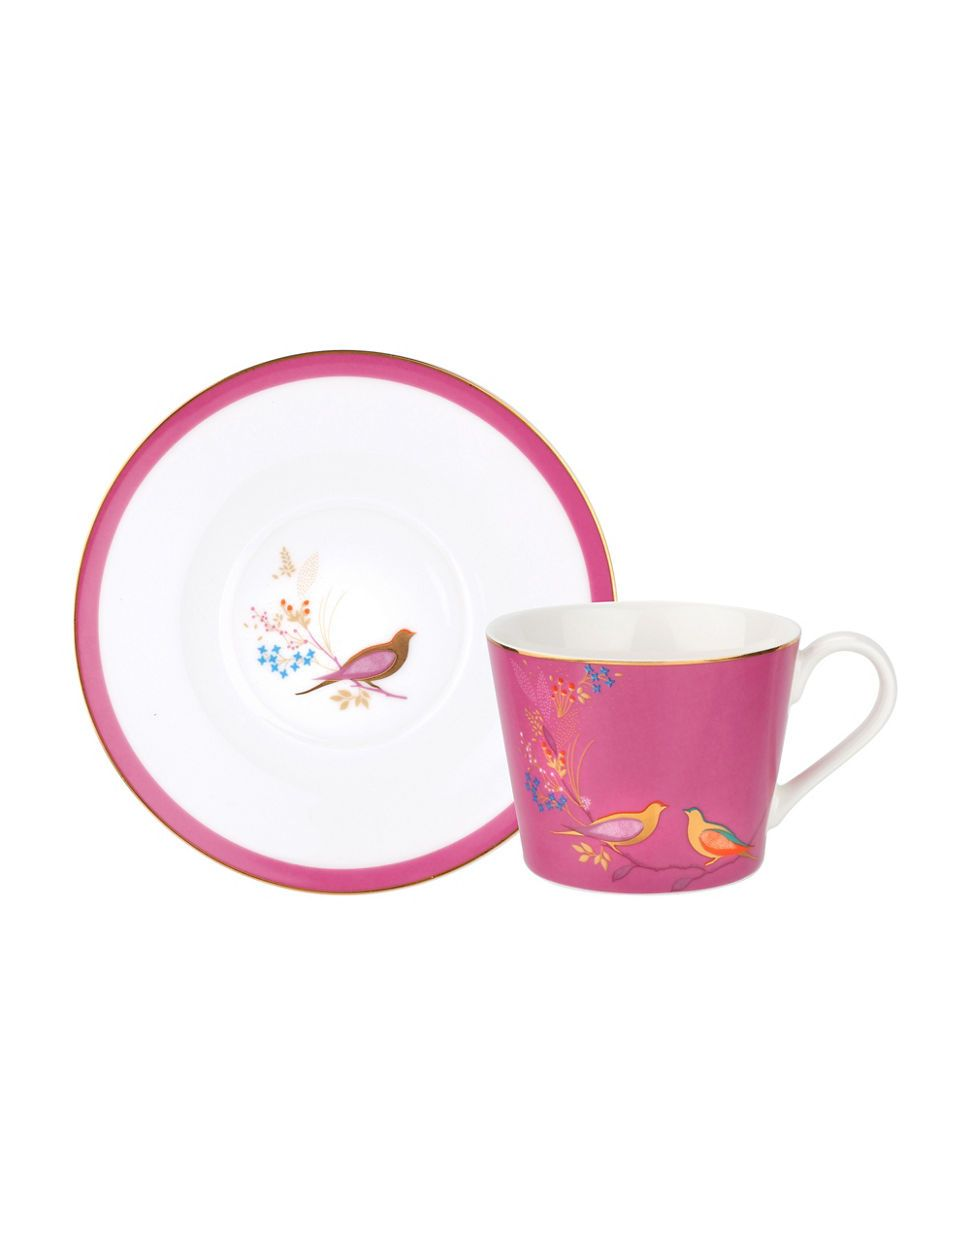 Chelsea Pink Birds, Teacup & Saucer, SARA MILLER LONDON-VONMEL Luxe Gifts